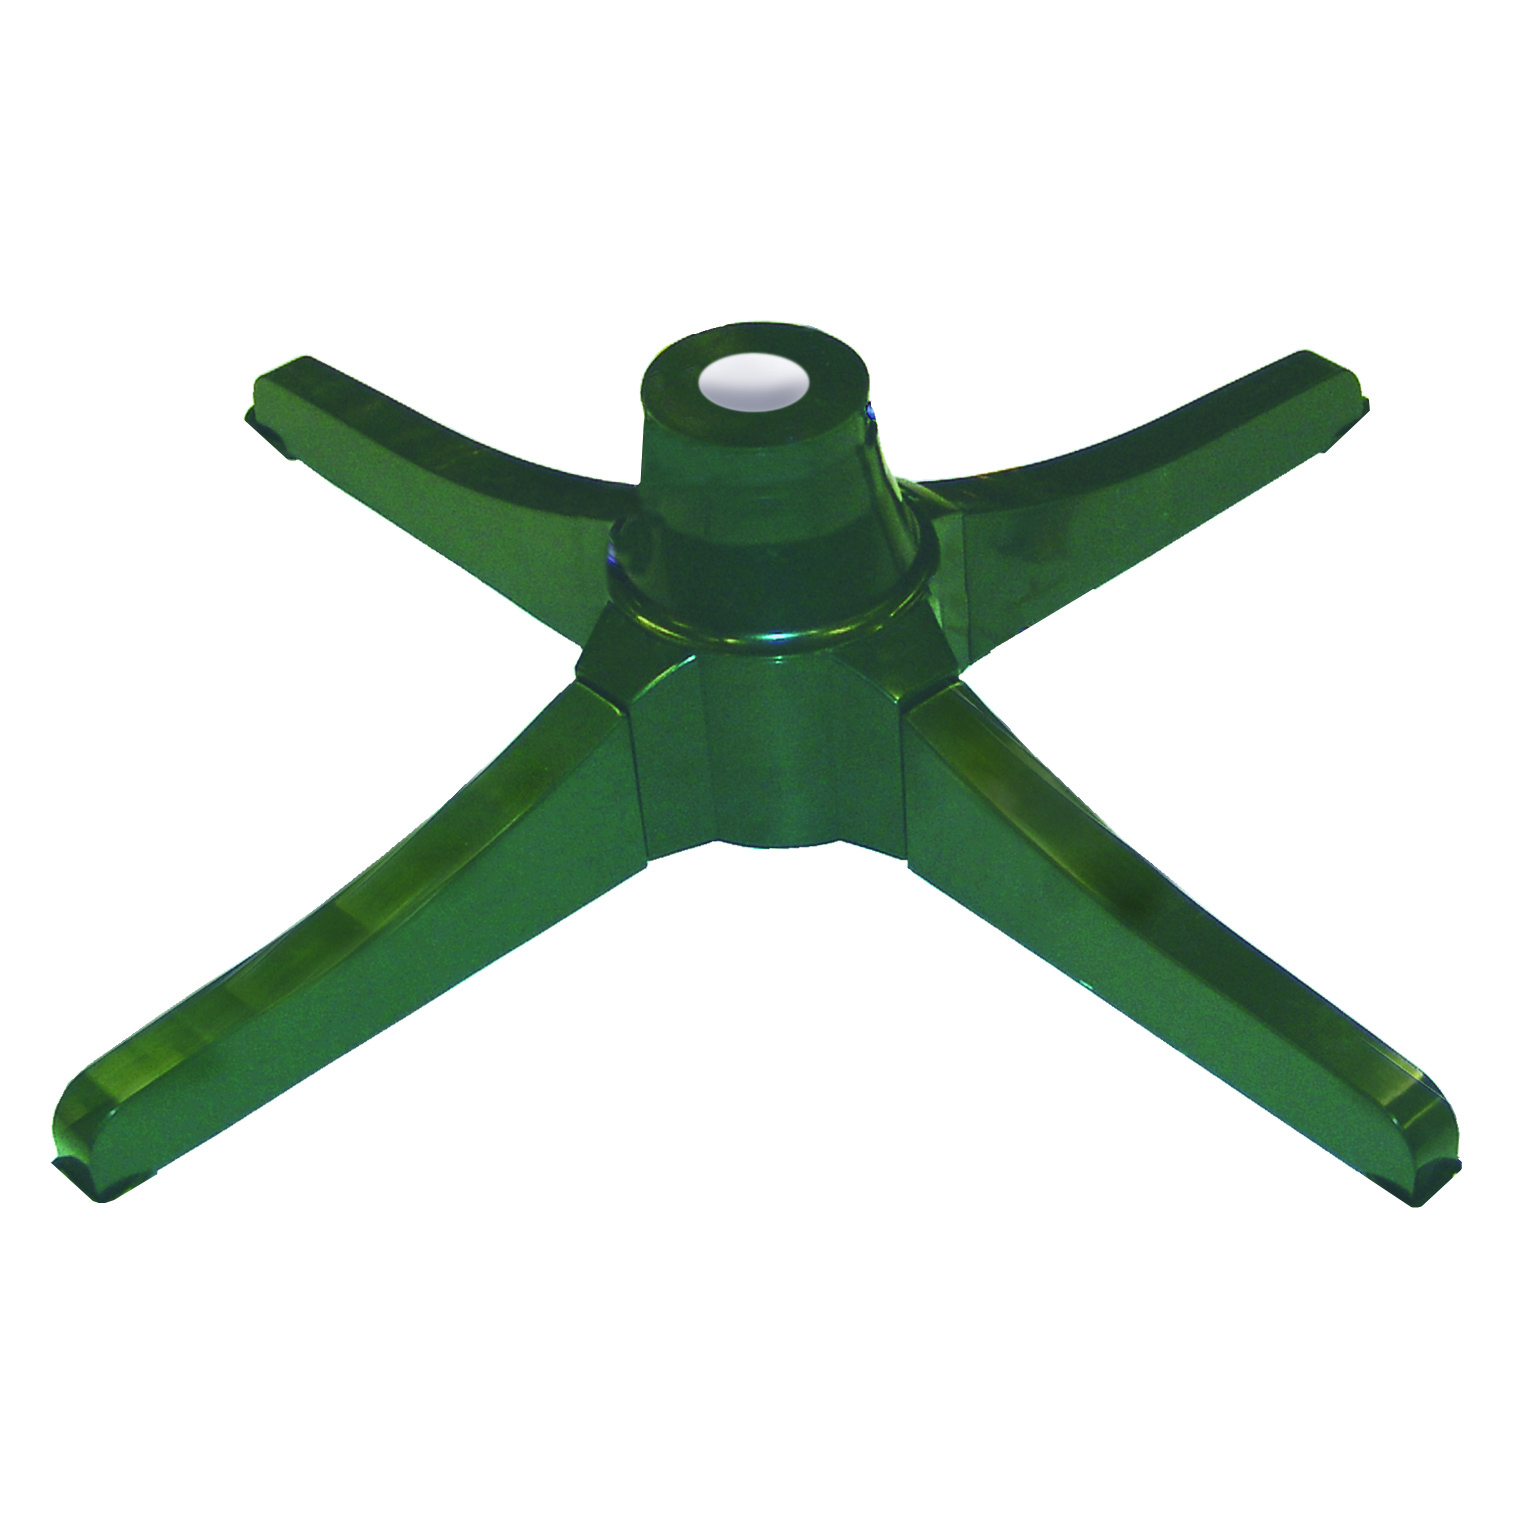 360 Degree Rotating Christmas Tree Stand - for 7.5' Trees ...